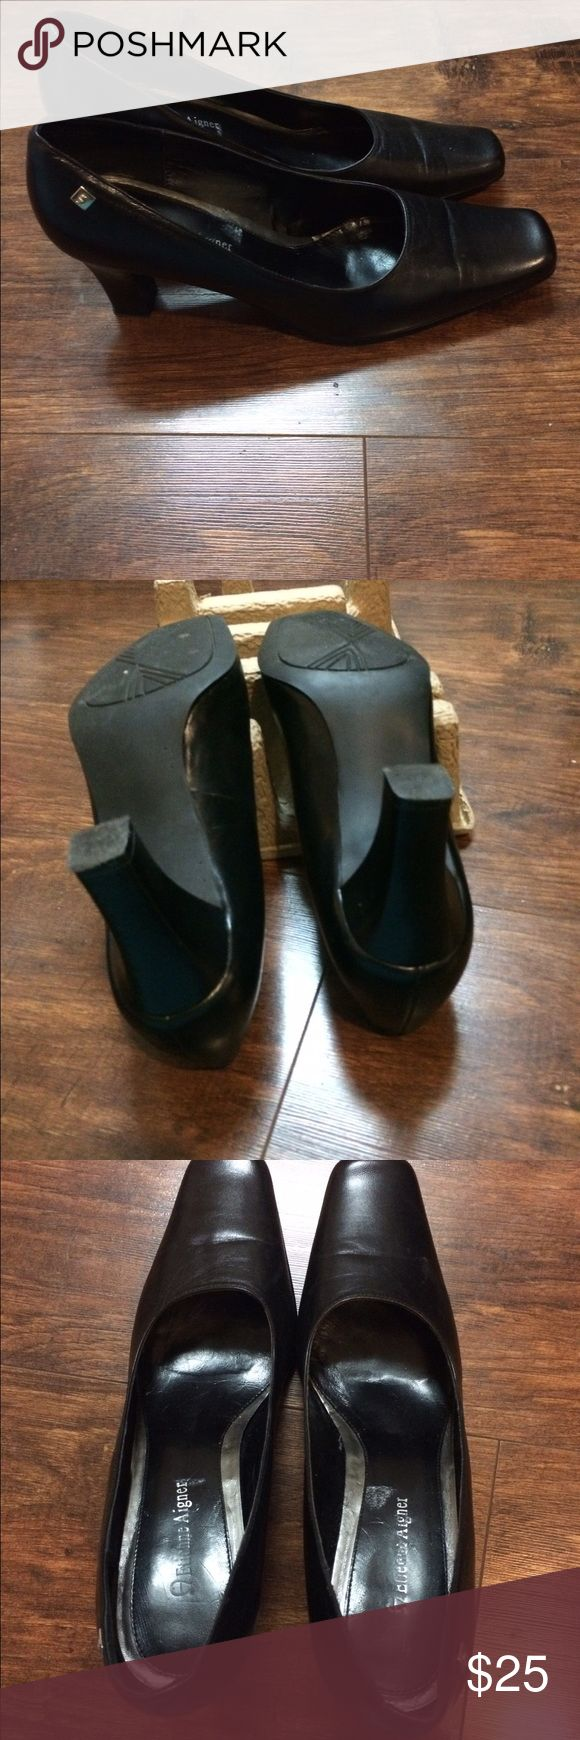 Etienne Aigner Black Leather Shoes Lightly worn, size 9, Etienne Aigner Black Leather Shoes Etienne Aigner Shoes Heels